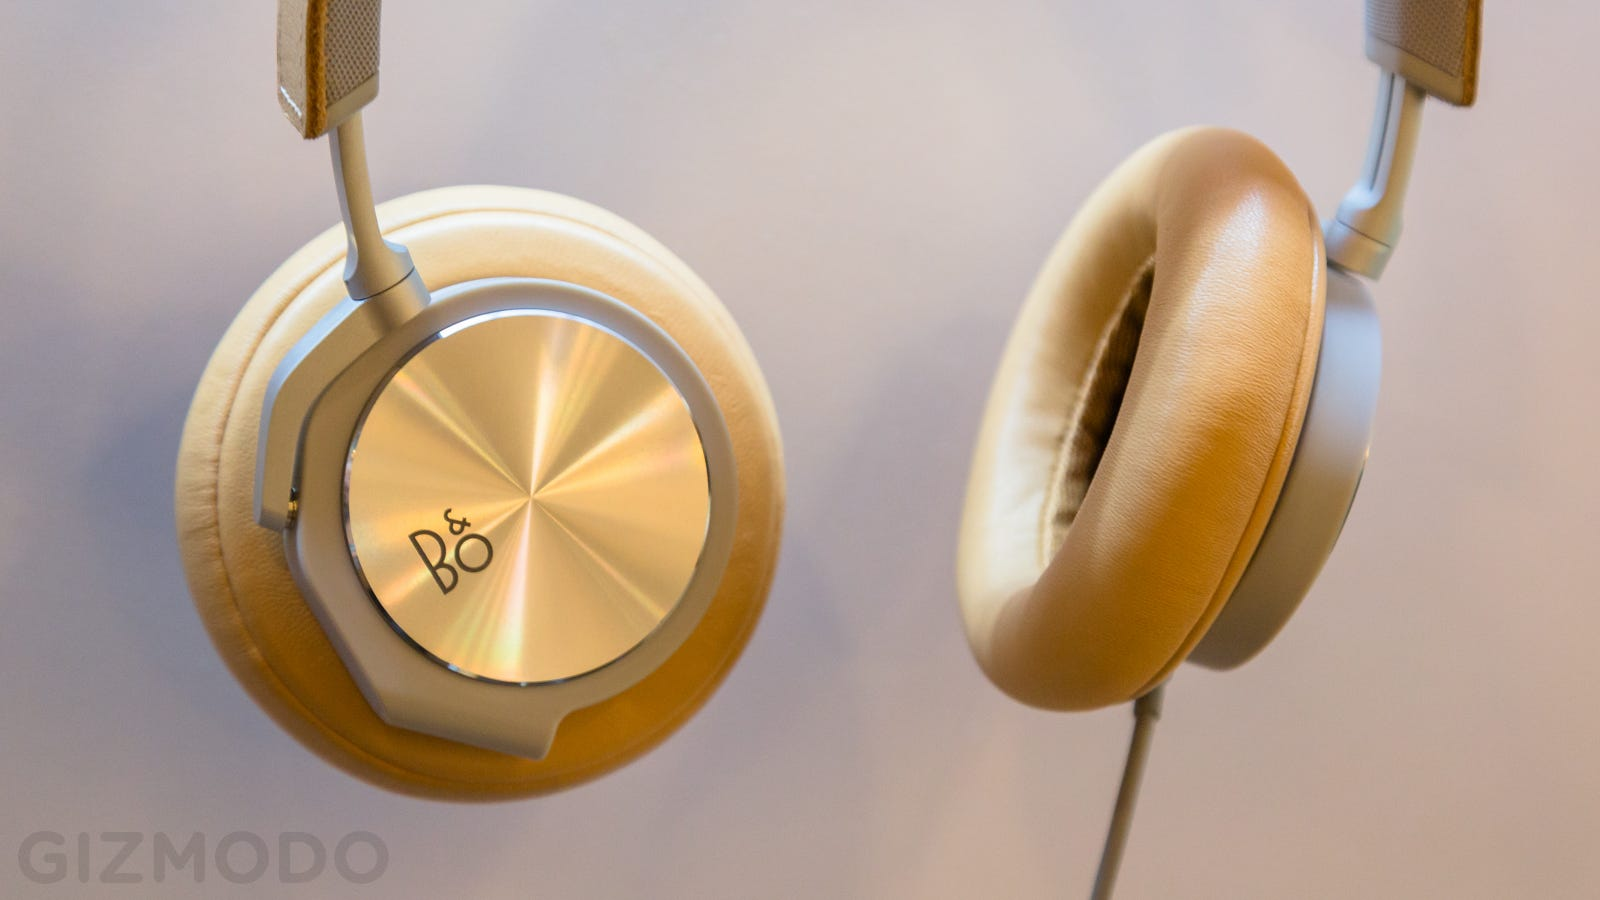 earbuds running wired - B&O H6 Headphones Are So Beautiful and Fancy They'll Fool Your Brain